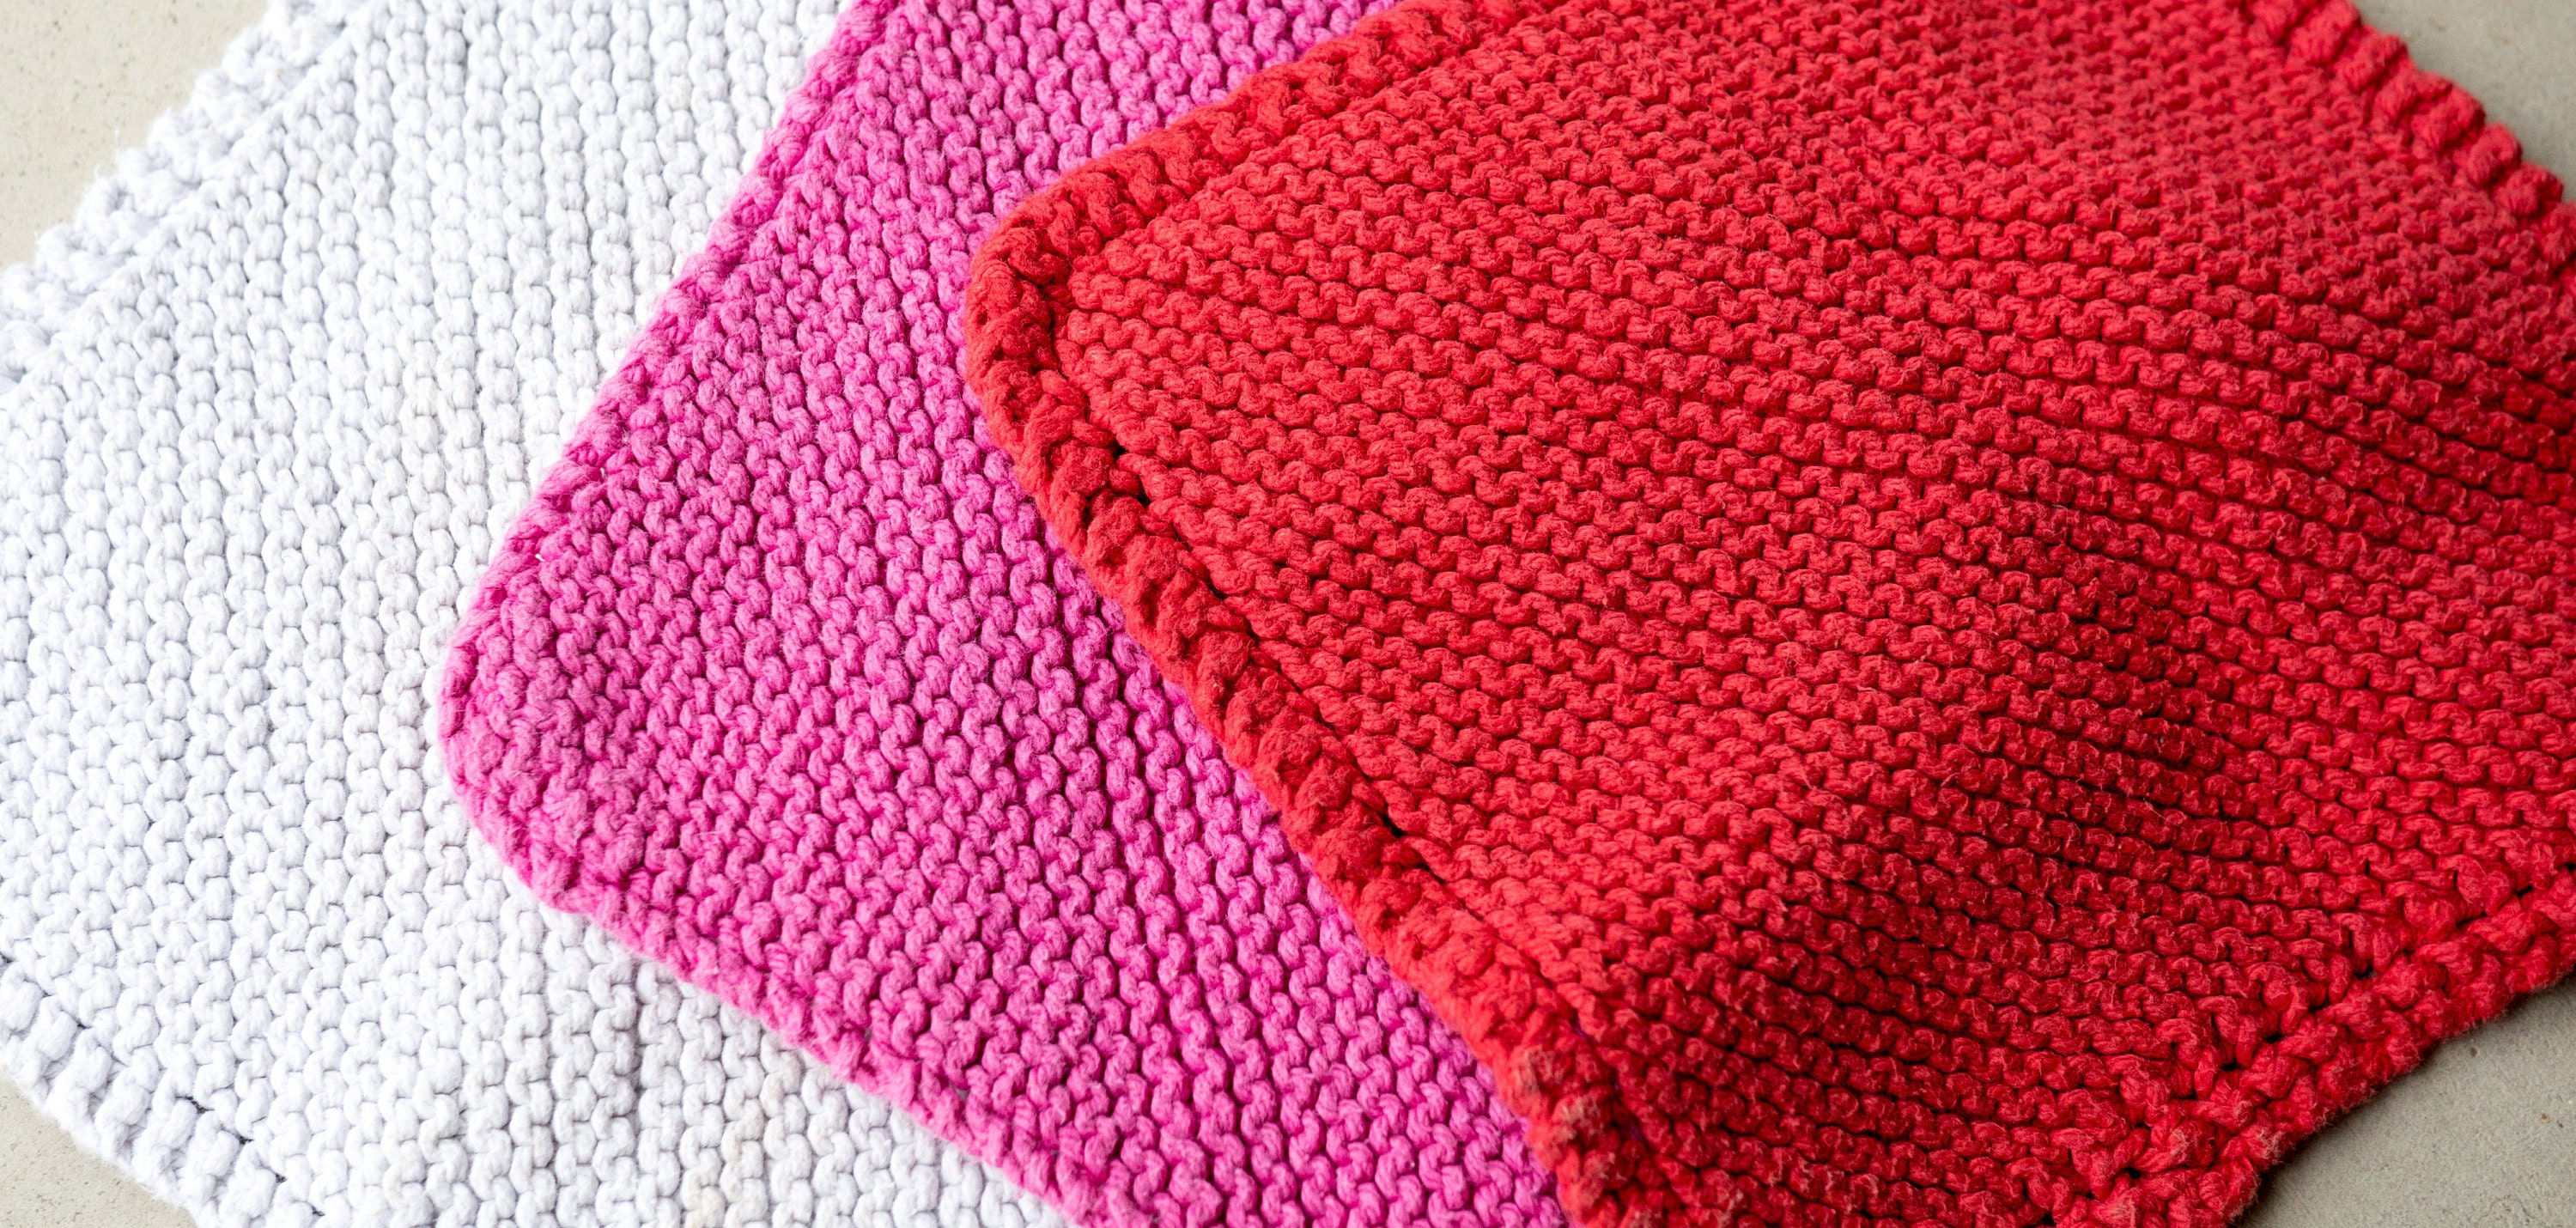 White, pink, and red wash cloths that I have knitted over the years.